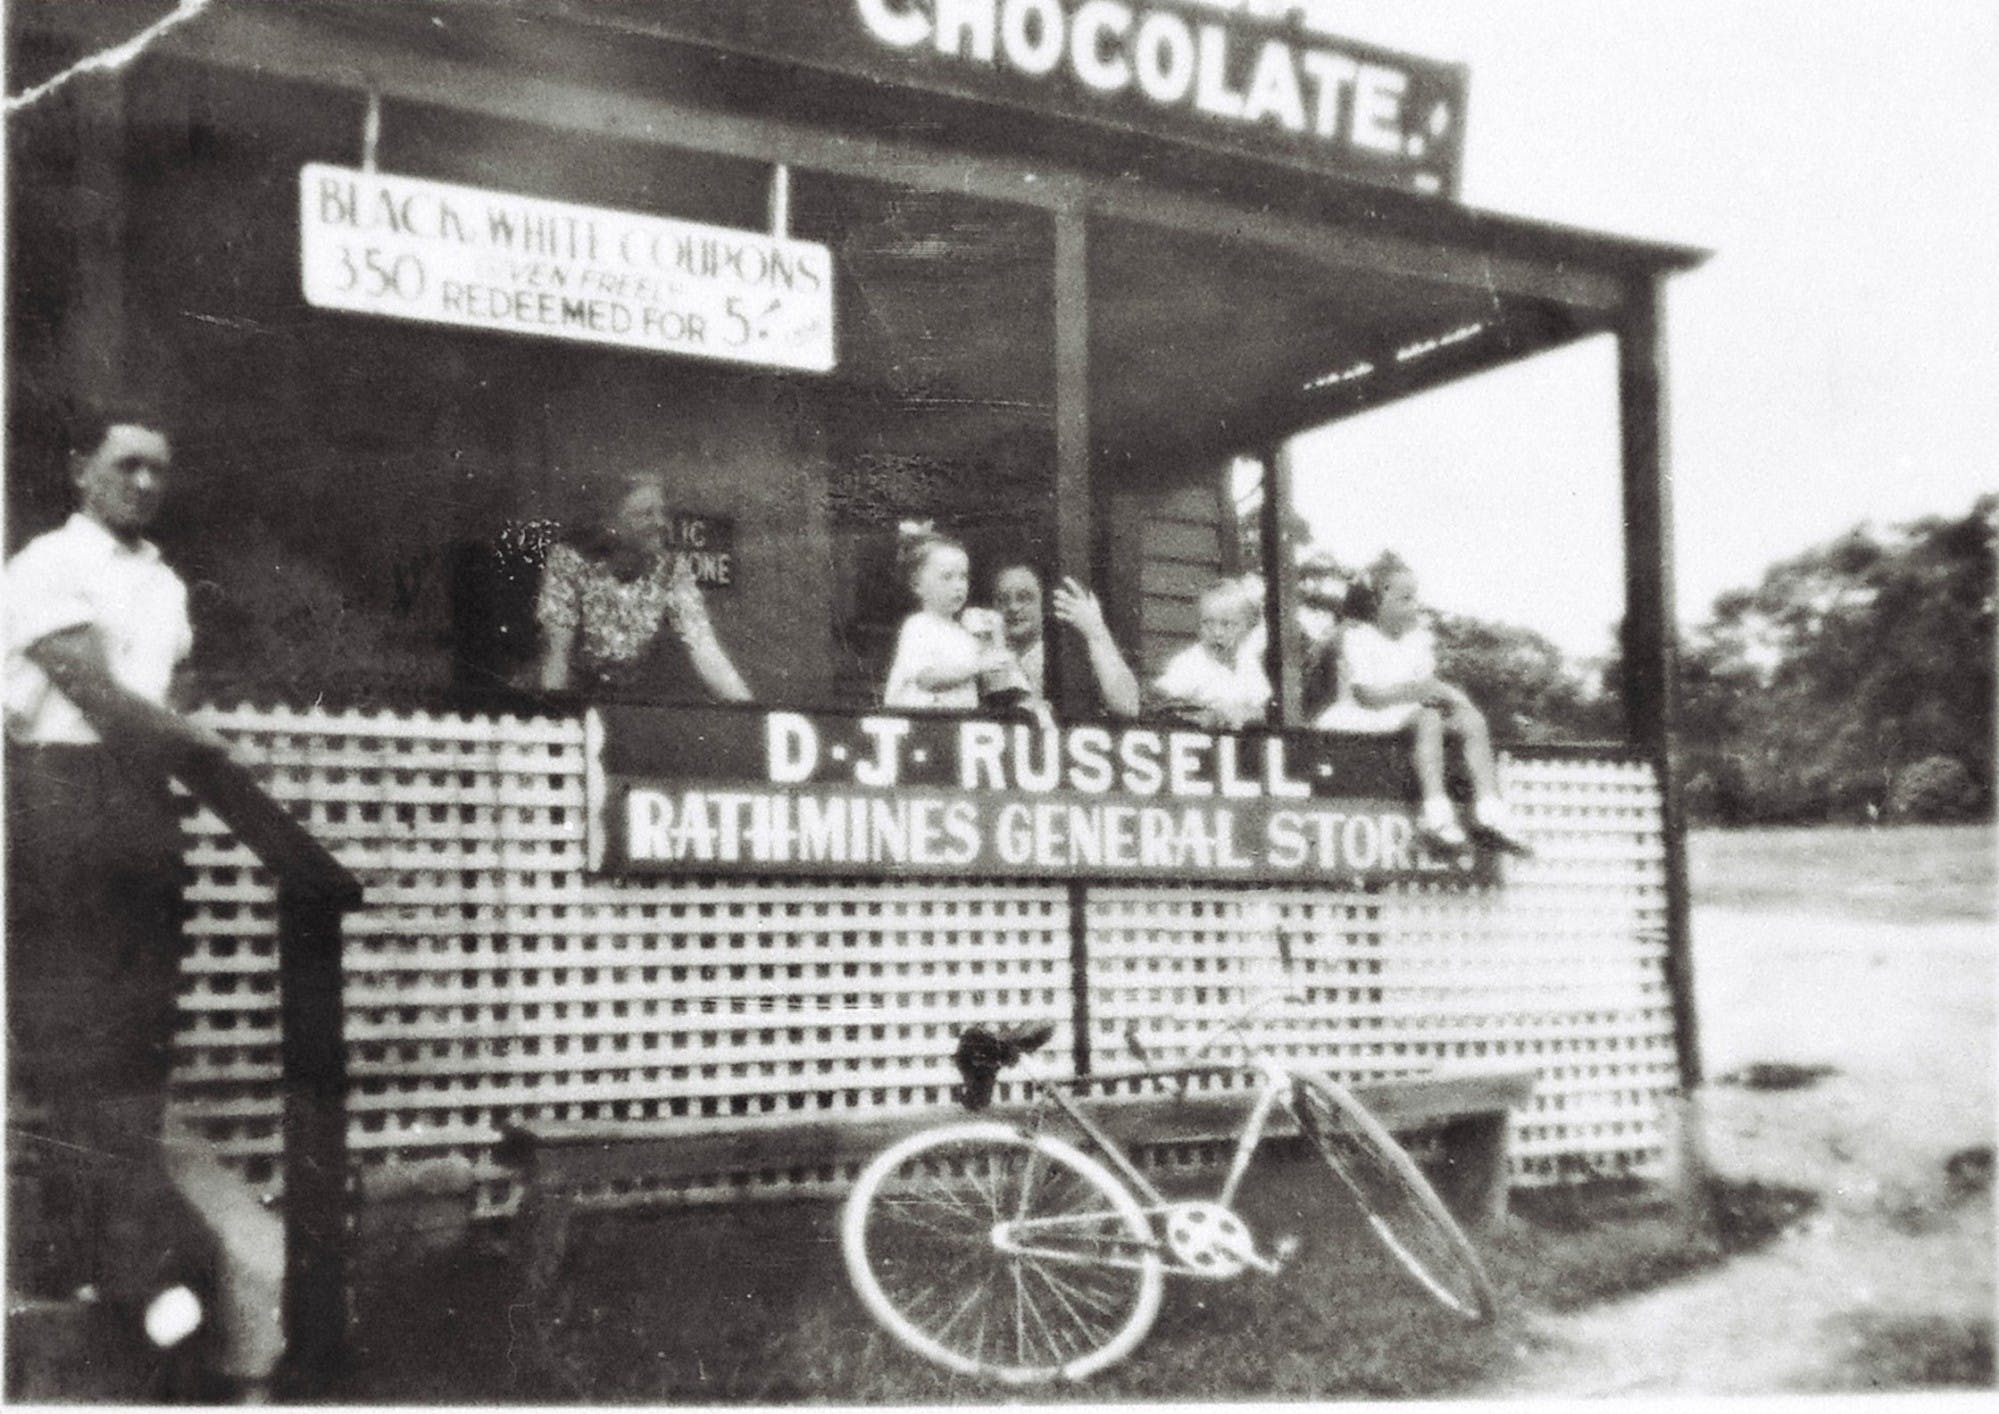 D.J Russell Rathmines General Store